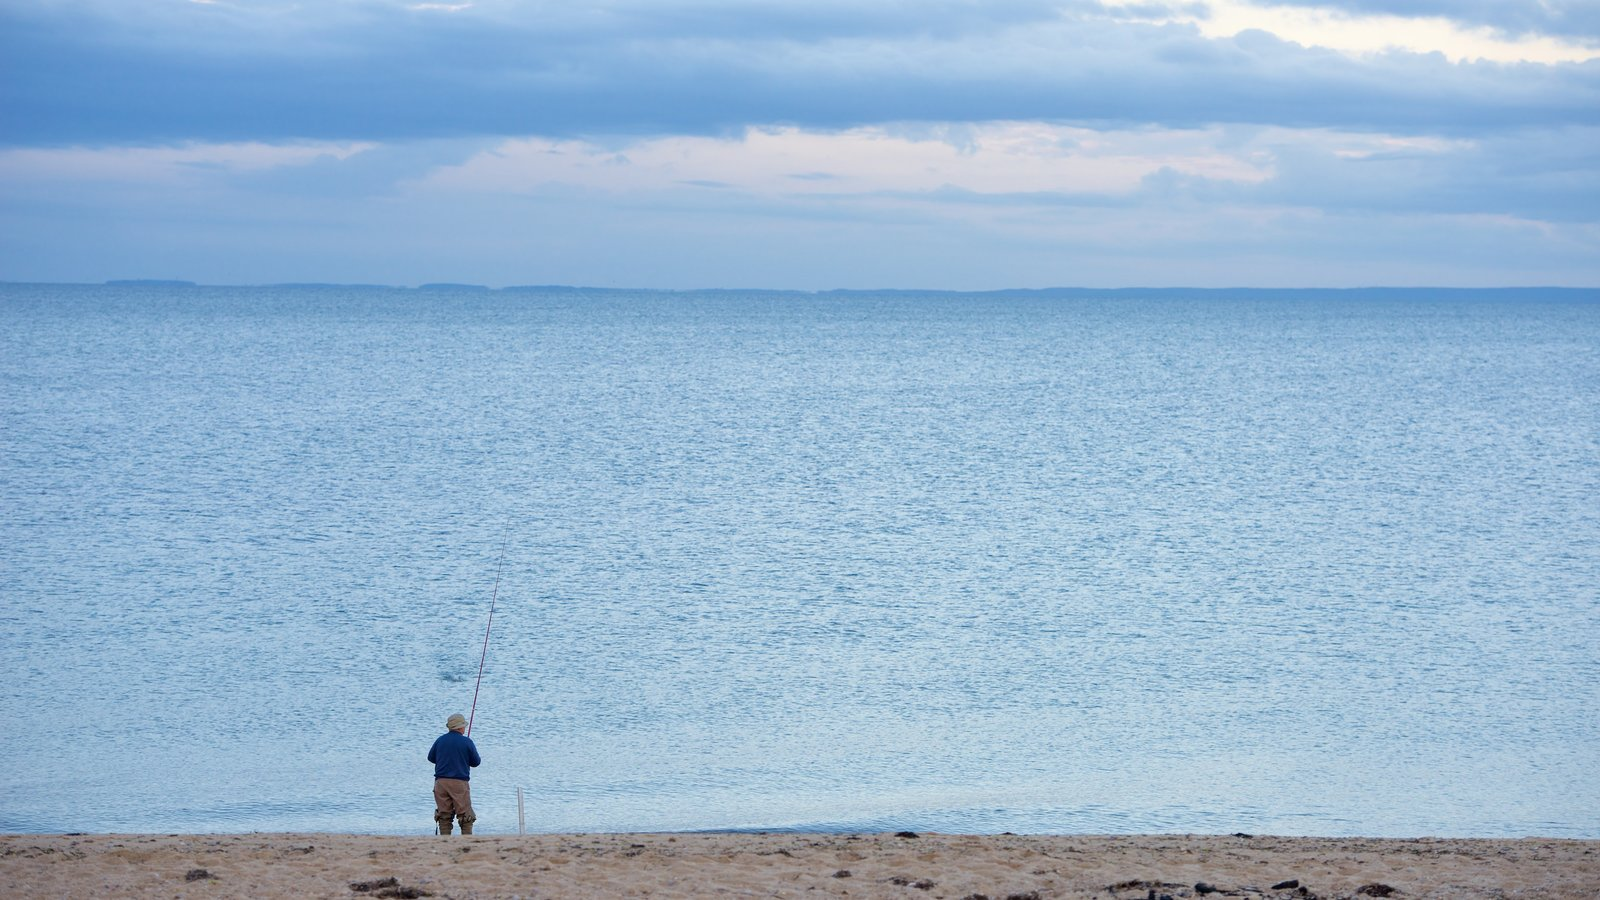 Herring Cove Beach showing a beach and fishing as well as an individual male